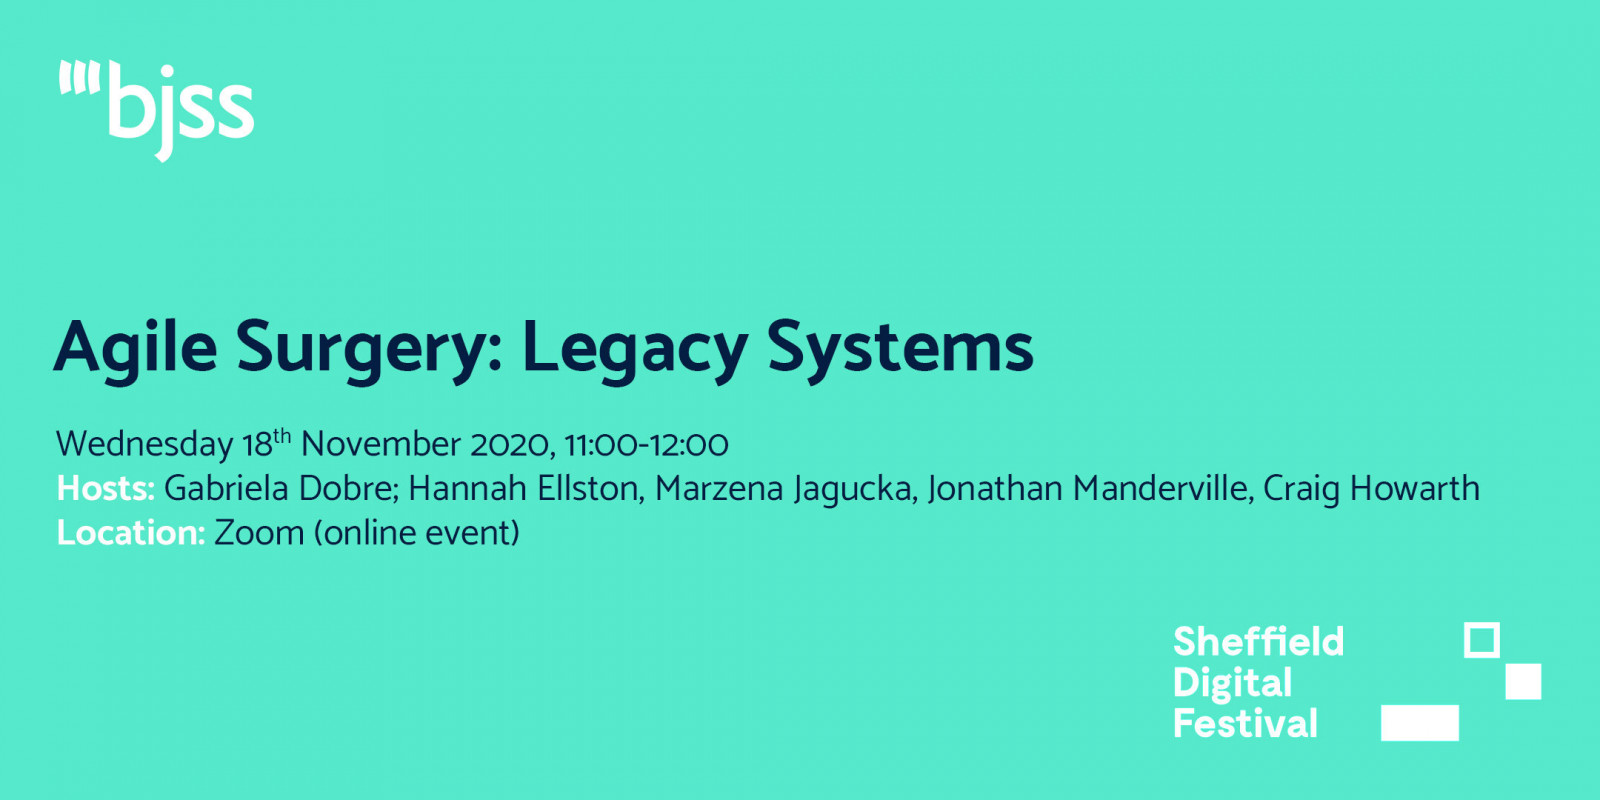 Agile Surgery: Legacy Systems - BJSS header image